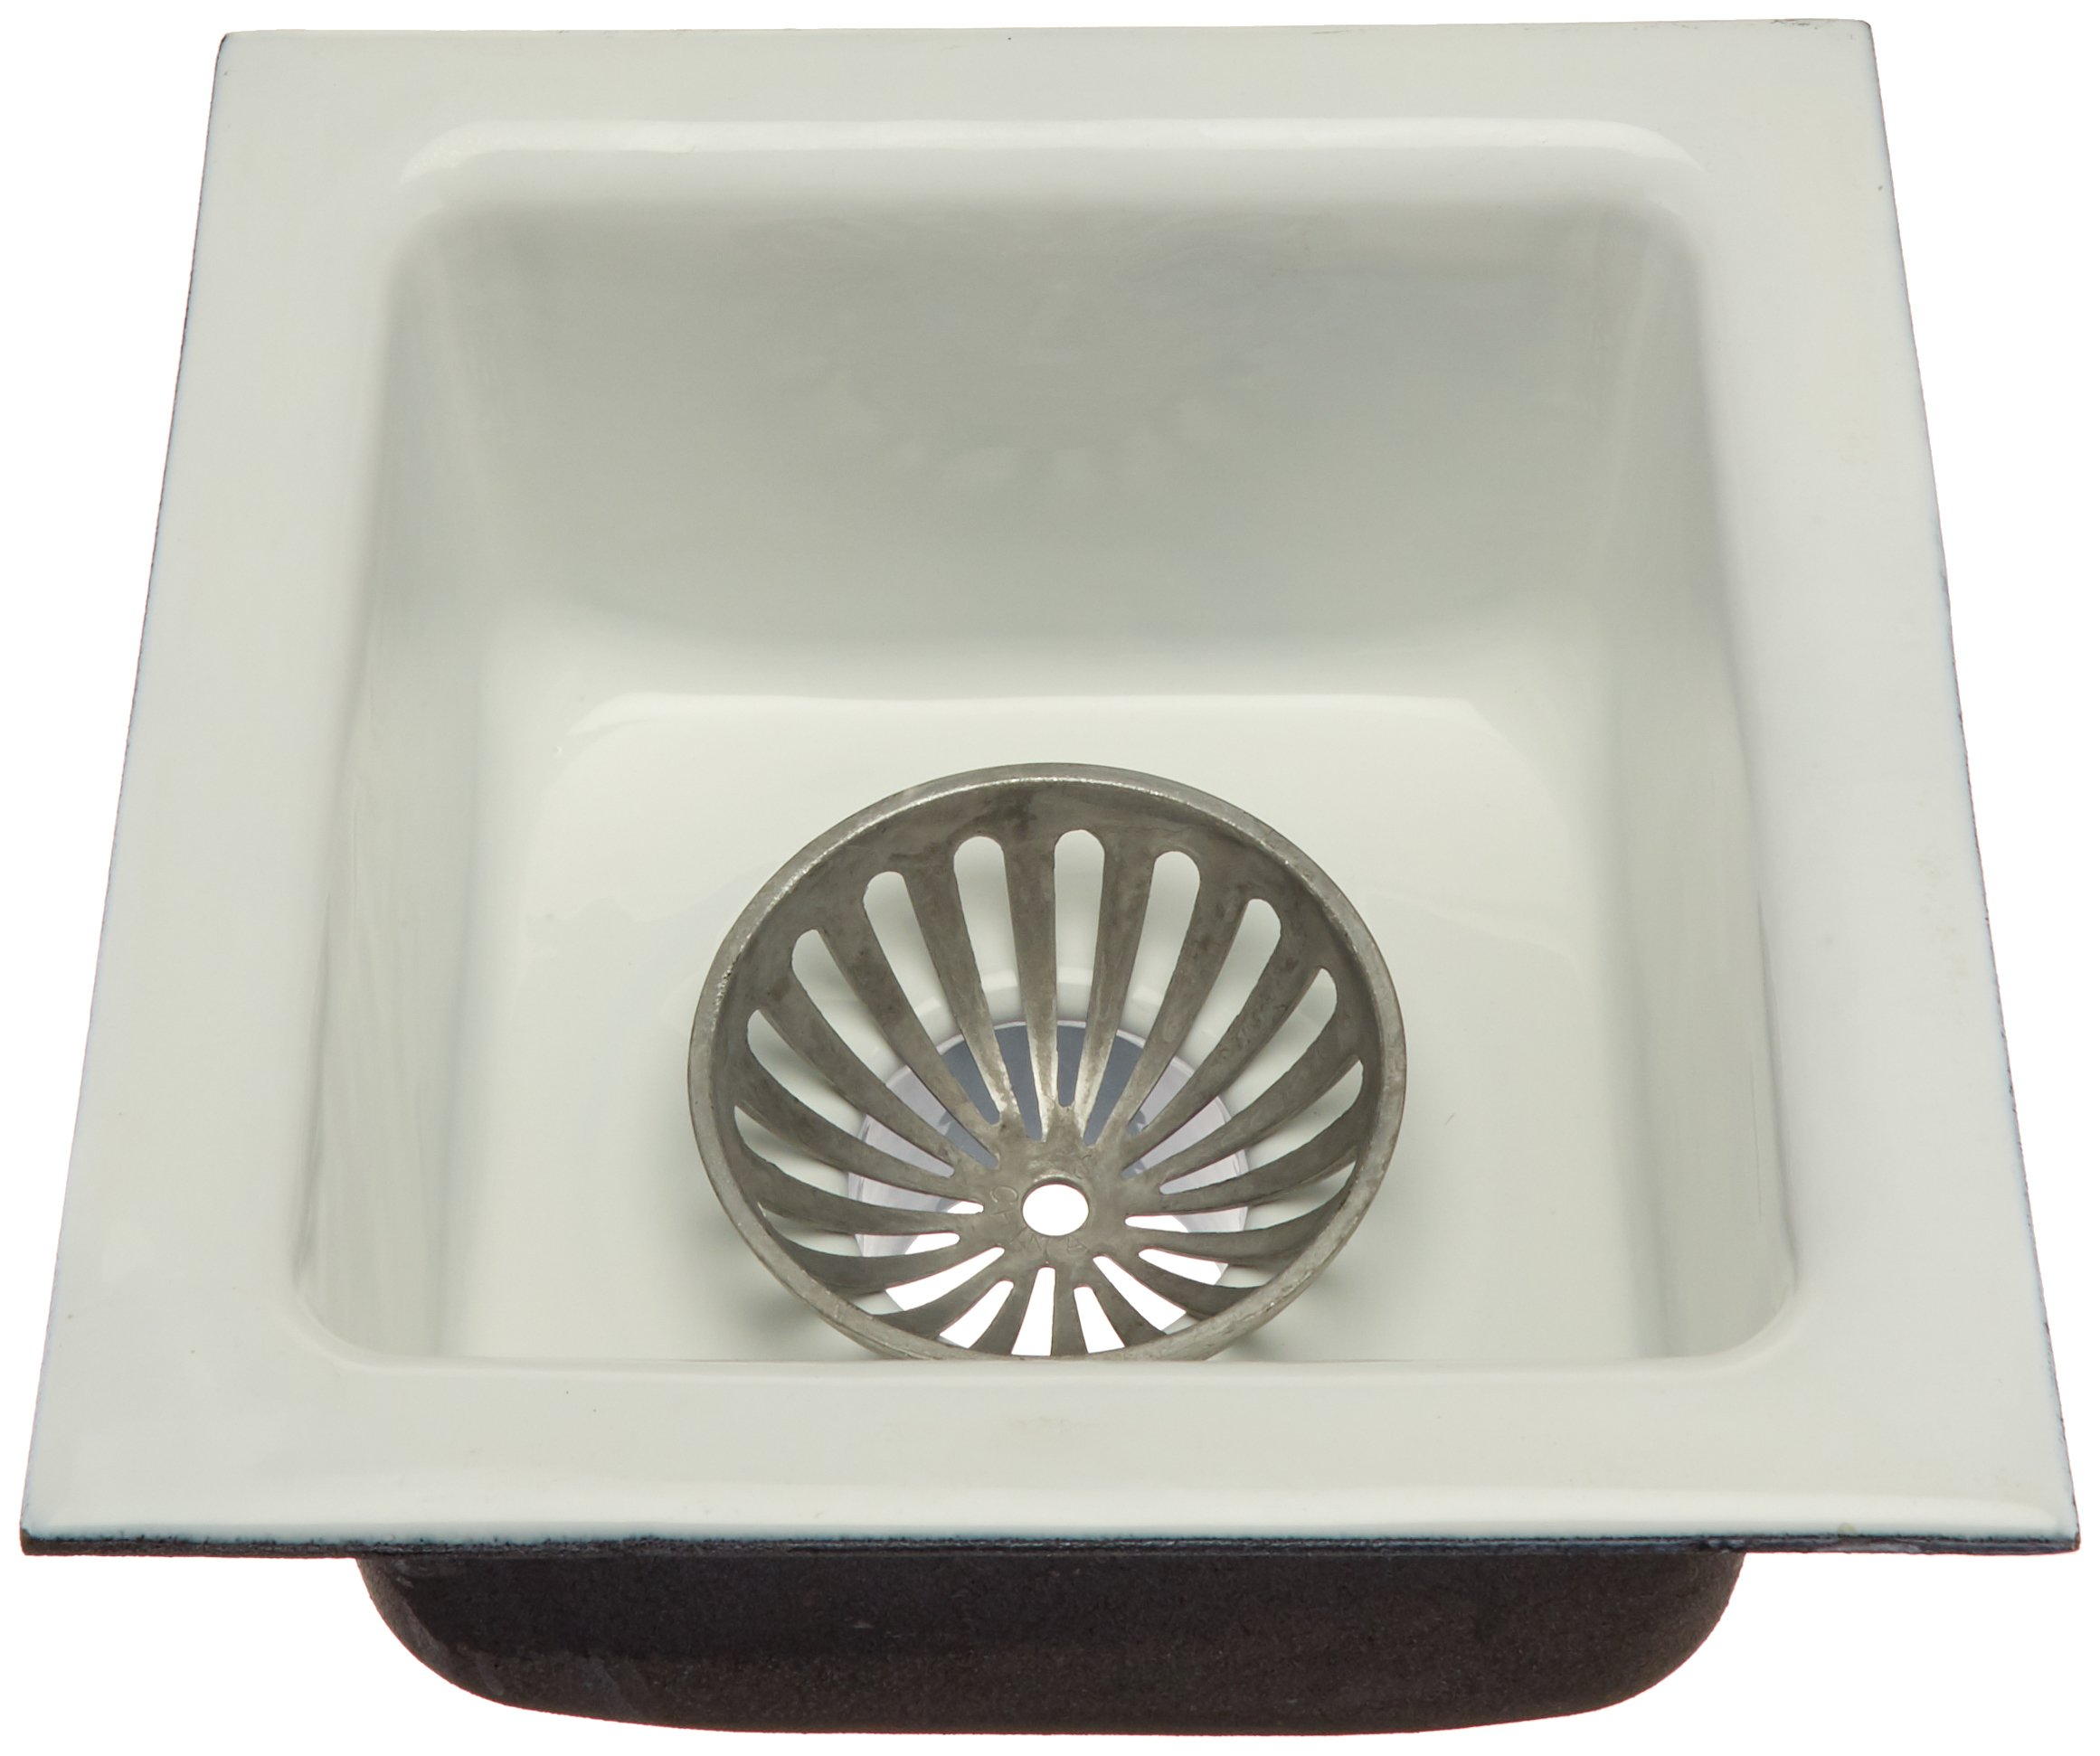 IPS 60401 12'' x 12'' x 6'' Floor Sink No Hub by IPS